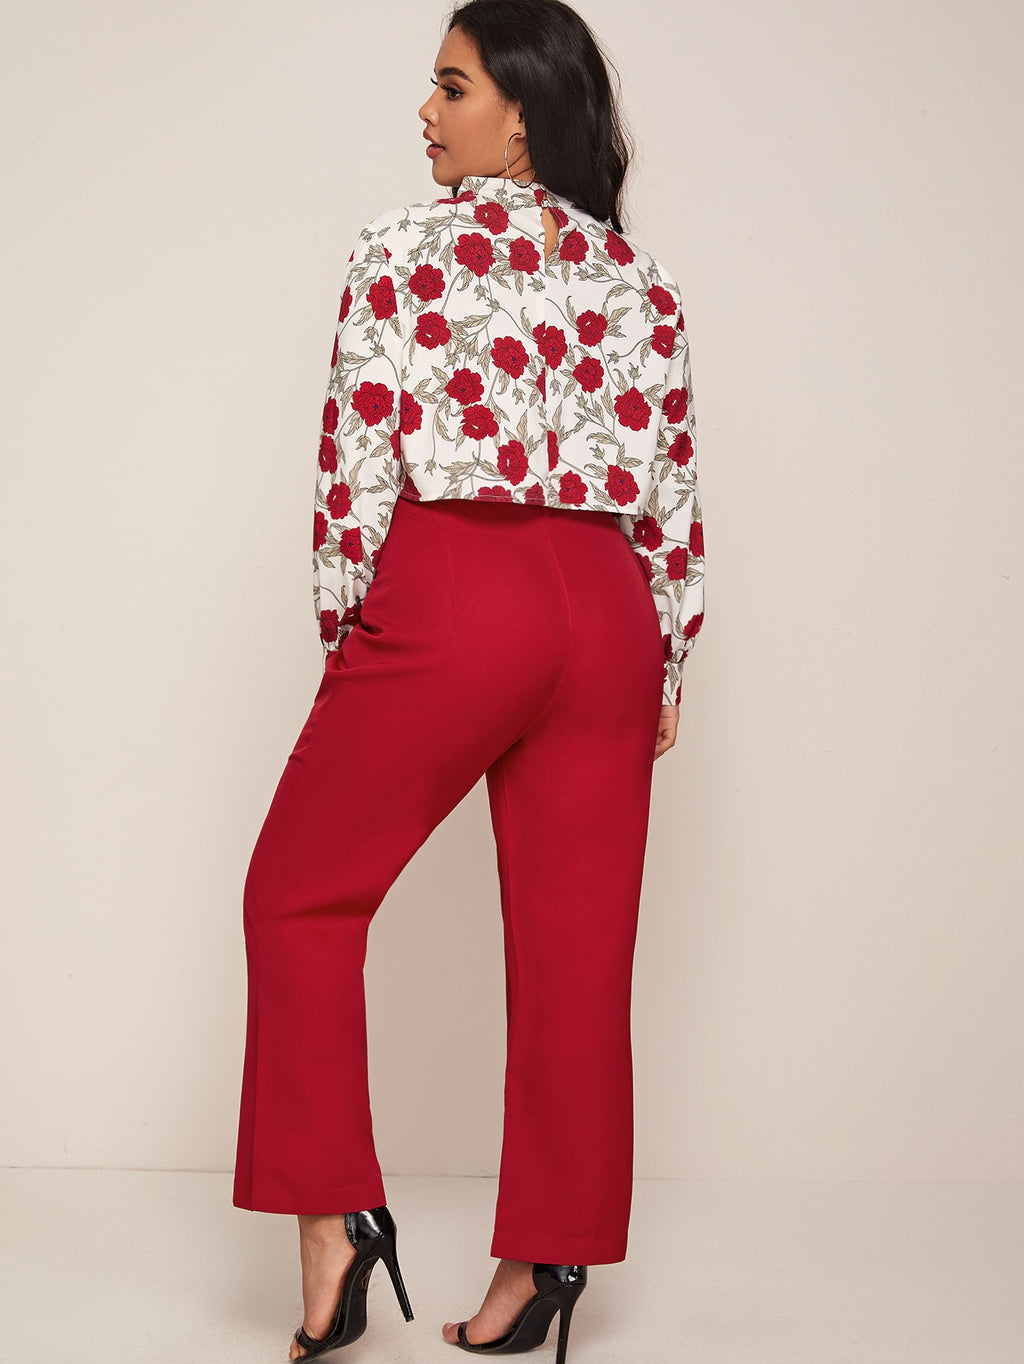 Plus Size Floral Keyhole Neckline Top & Pants Set